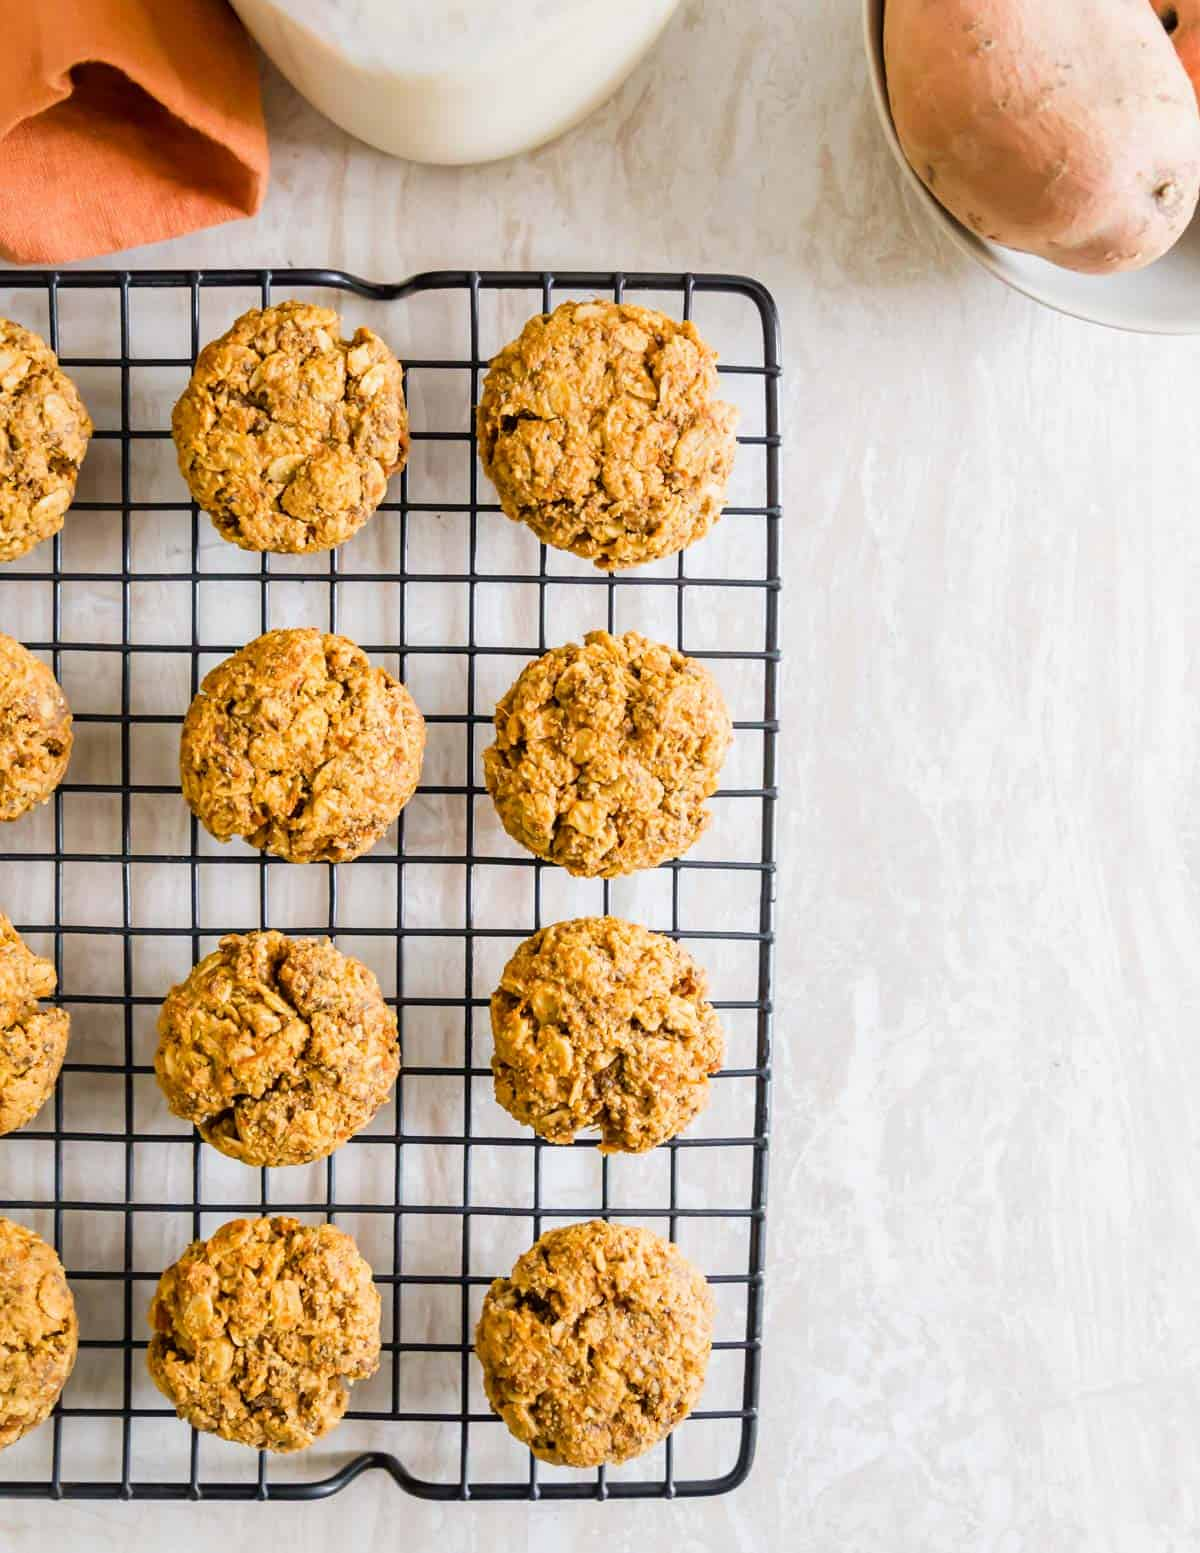 soft chewy sweet potato cookies made with mashed cooked sweet potato, oats and almond flour